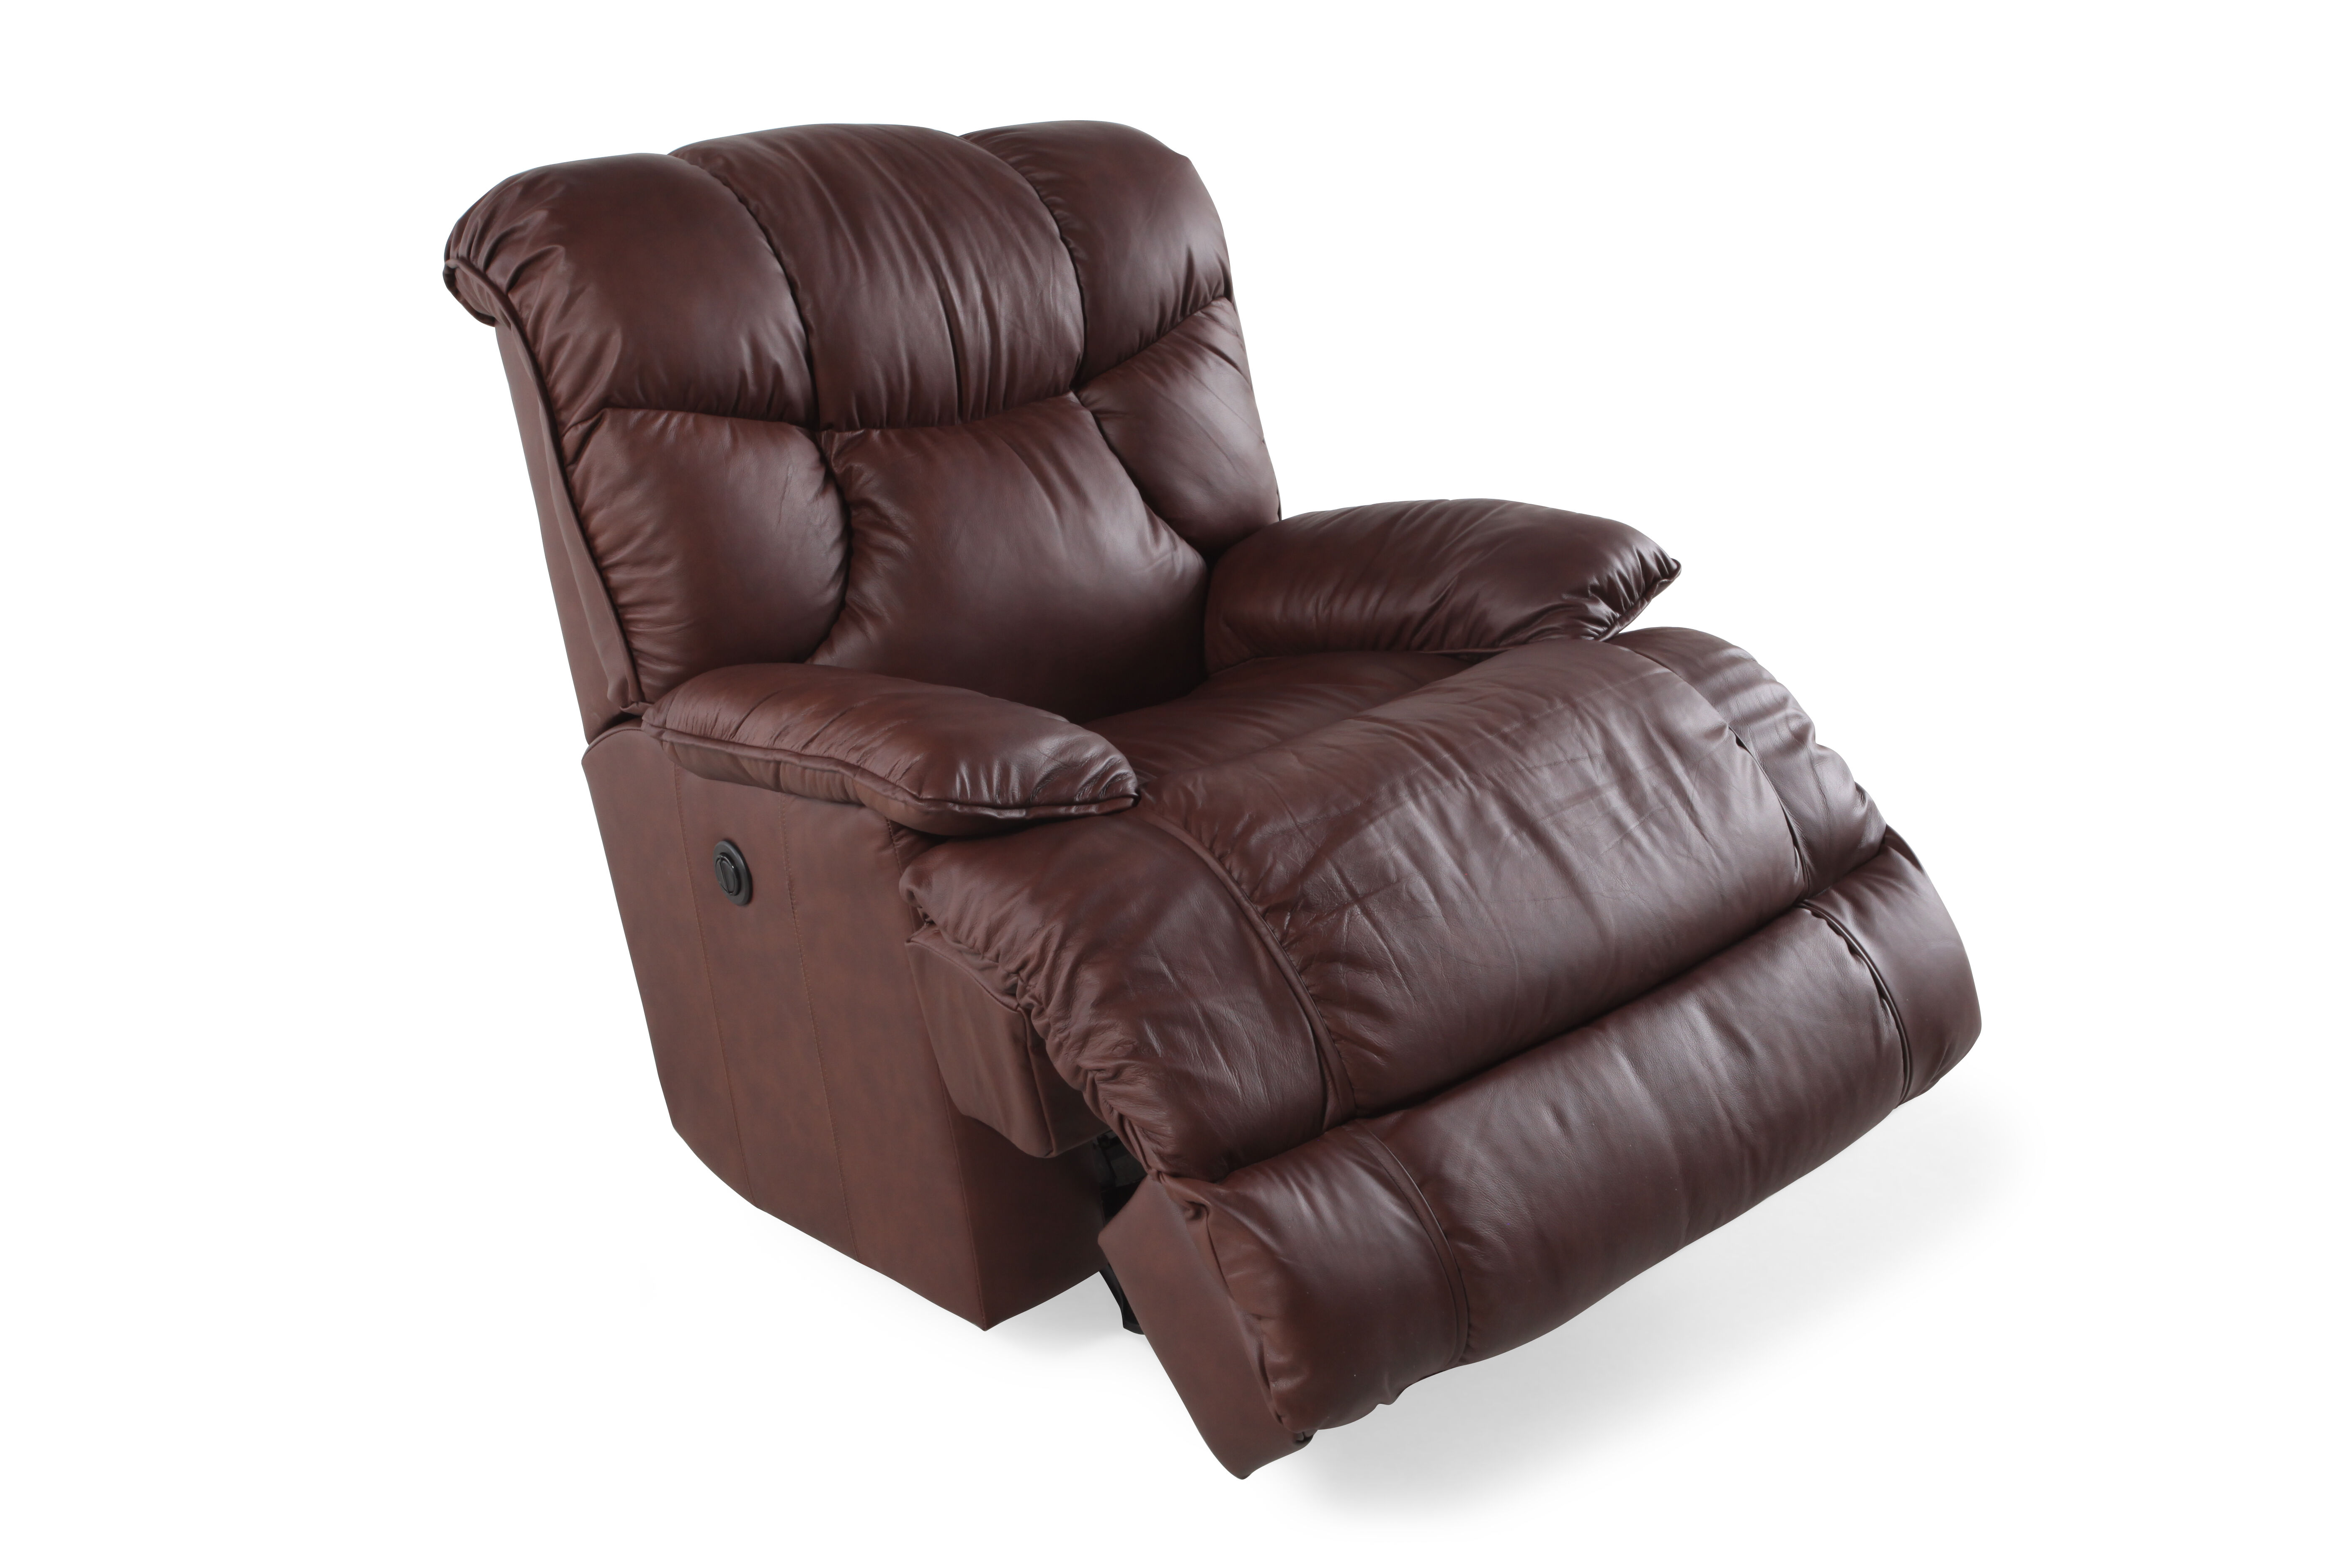 Lane Luck Power Recliner  sc 1 st  Mathis Brothers & Lane Luck Power Recliner | Mathis Brothers Furniture islam-shia.org